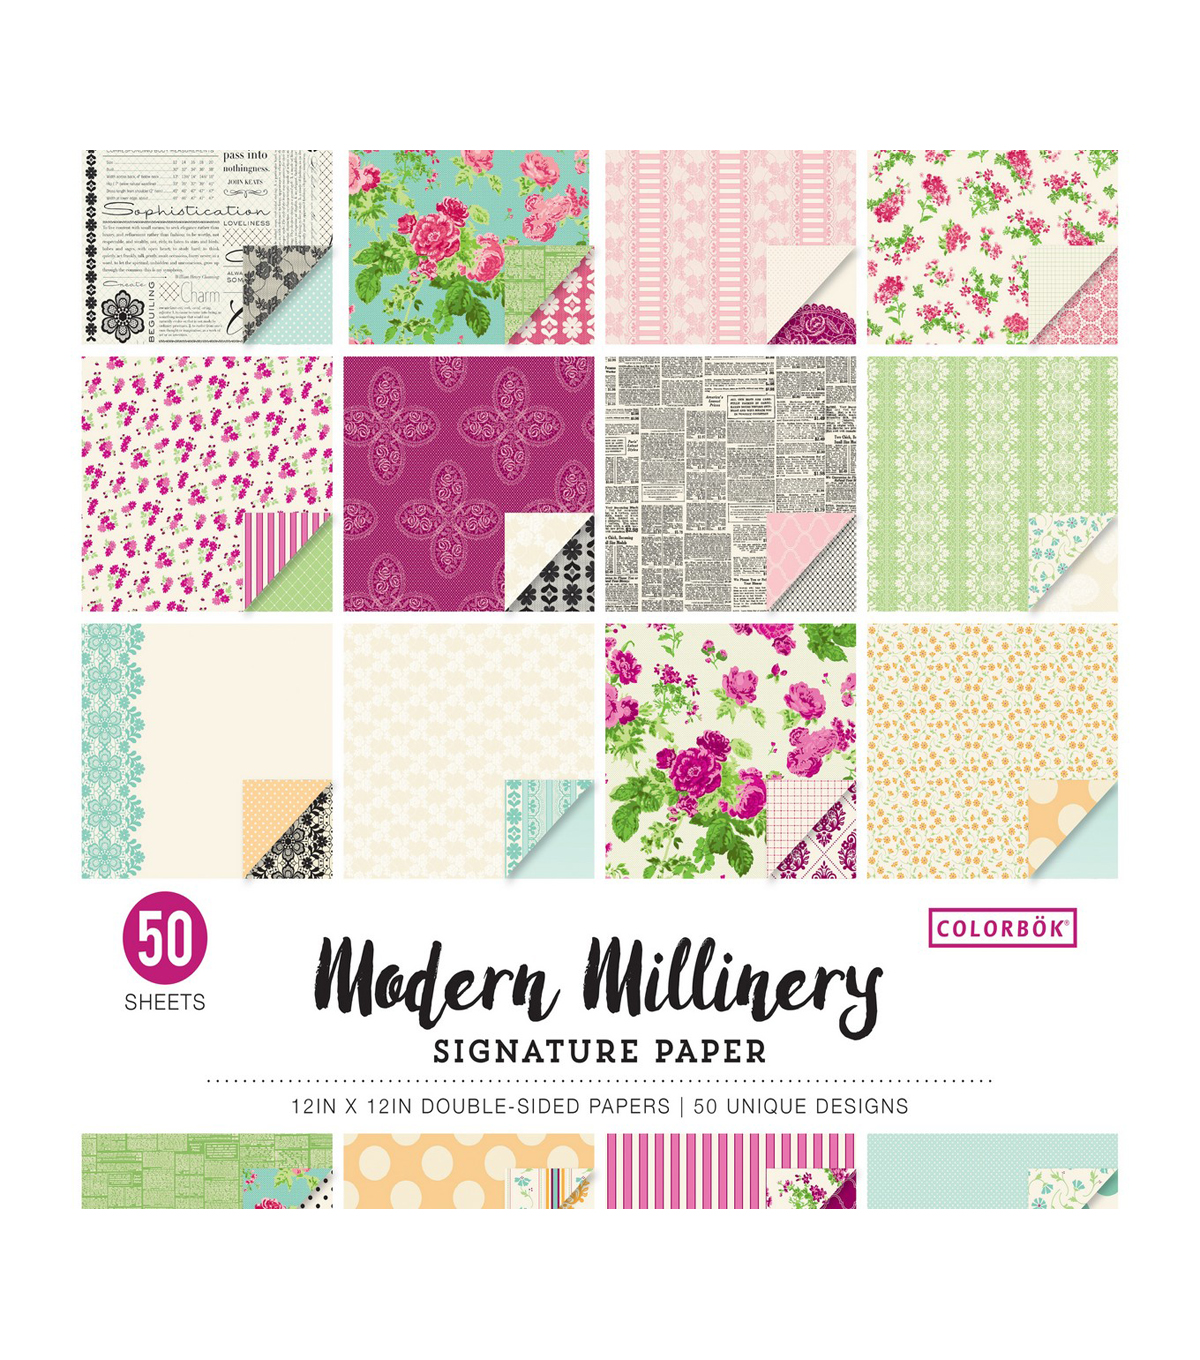 Colorbok Modern Millinery 50 pk Double-sided Signature Papers